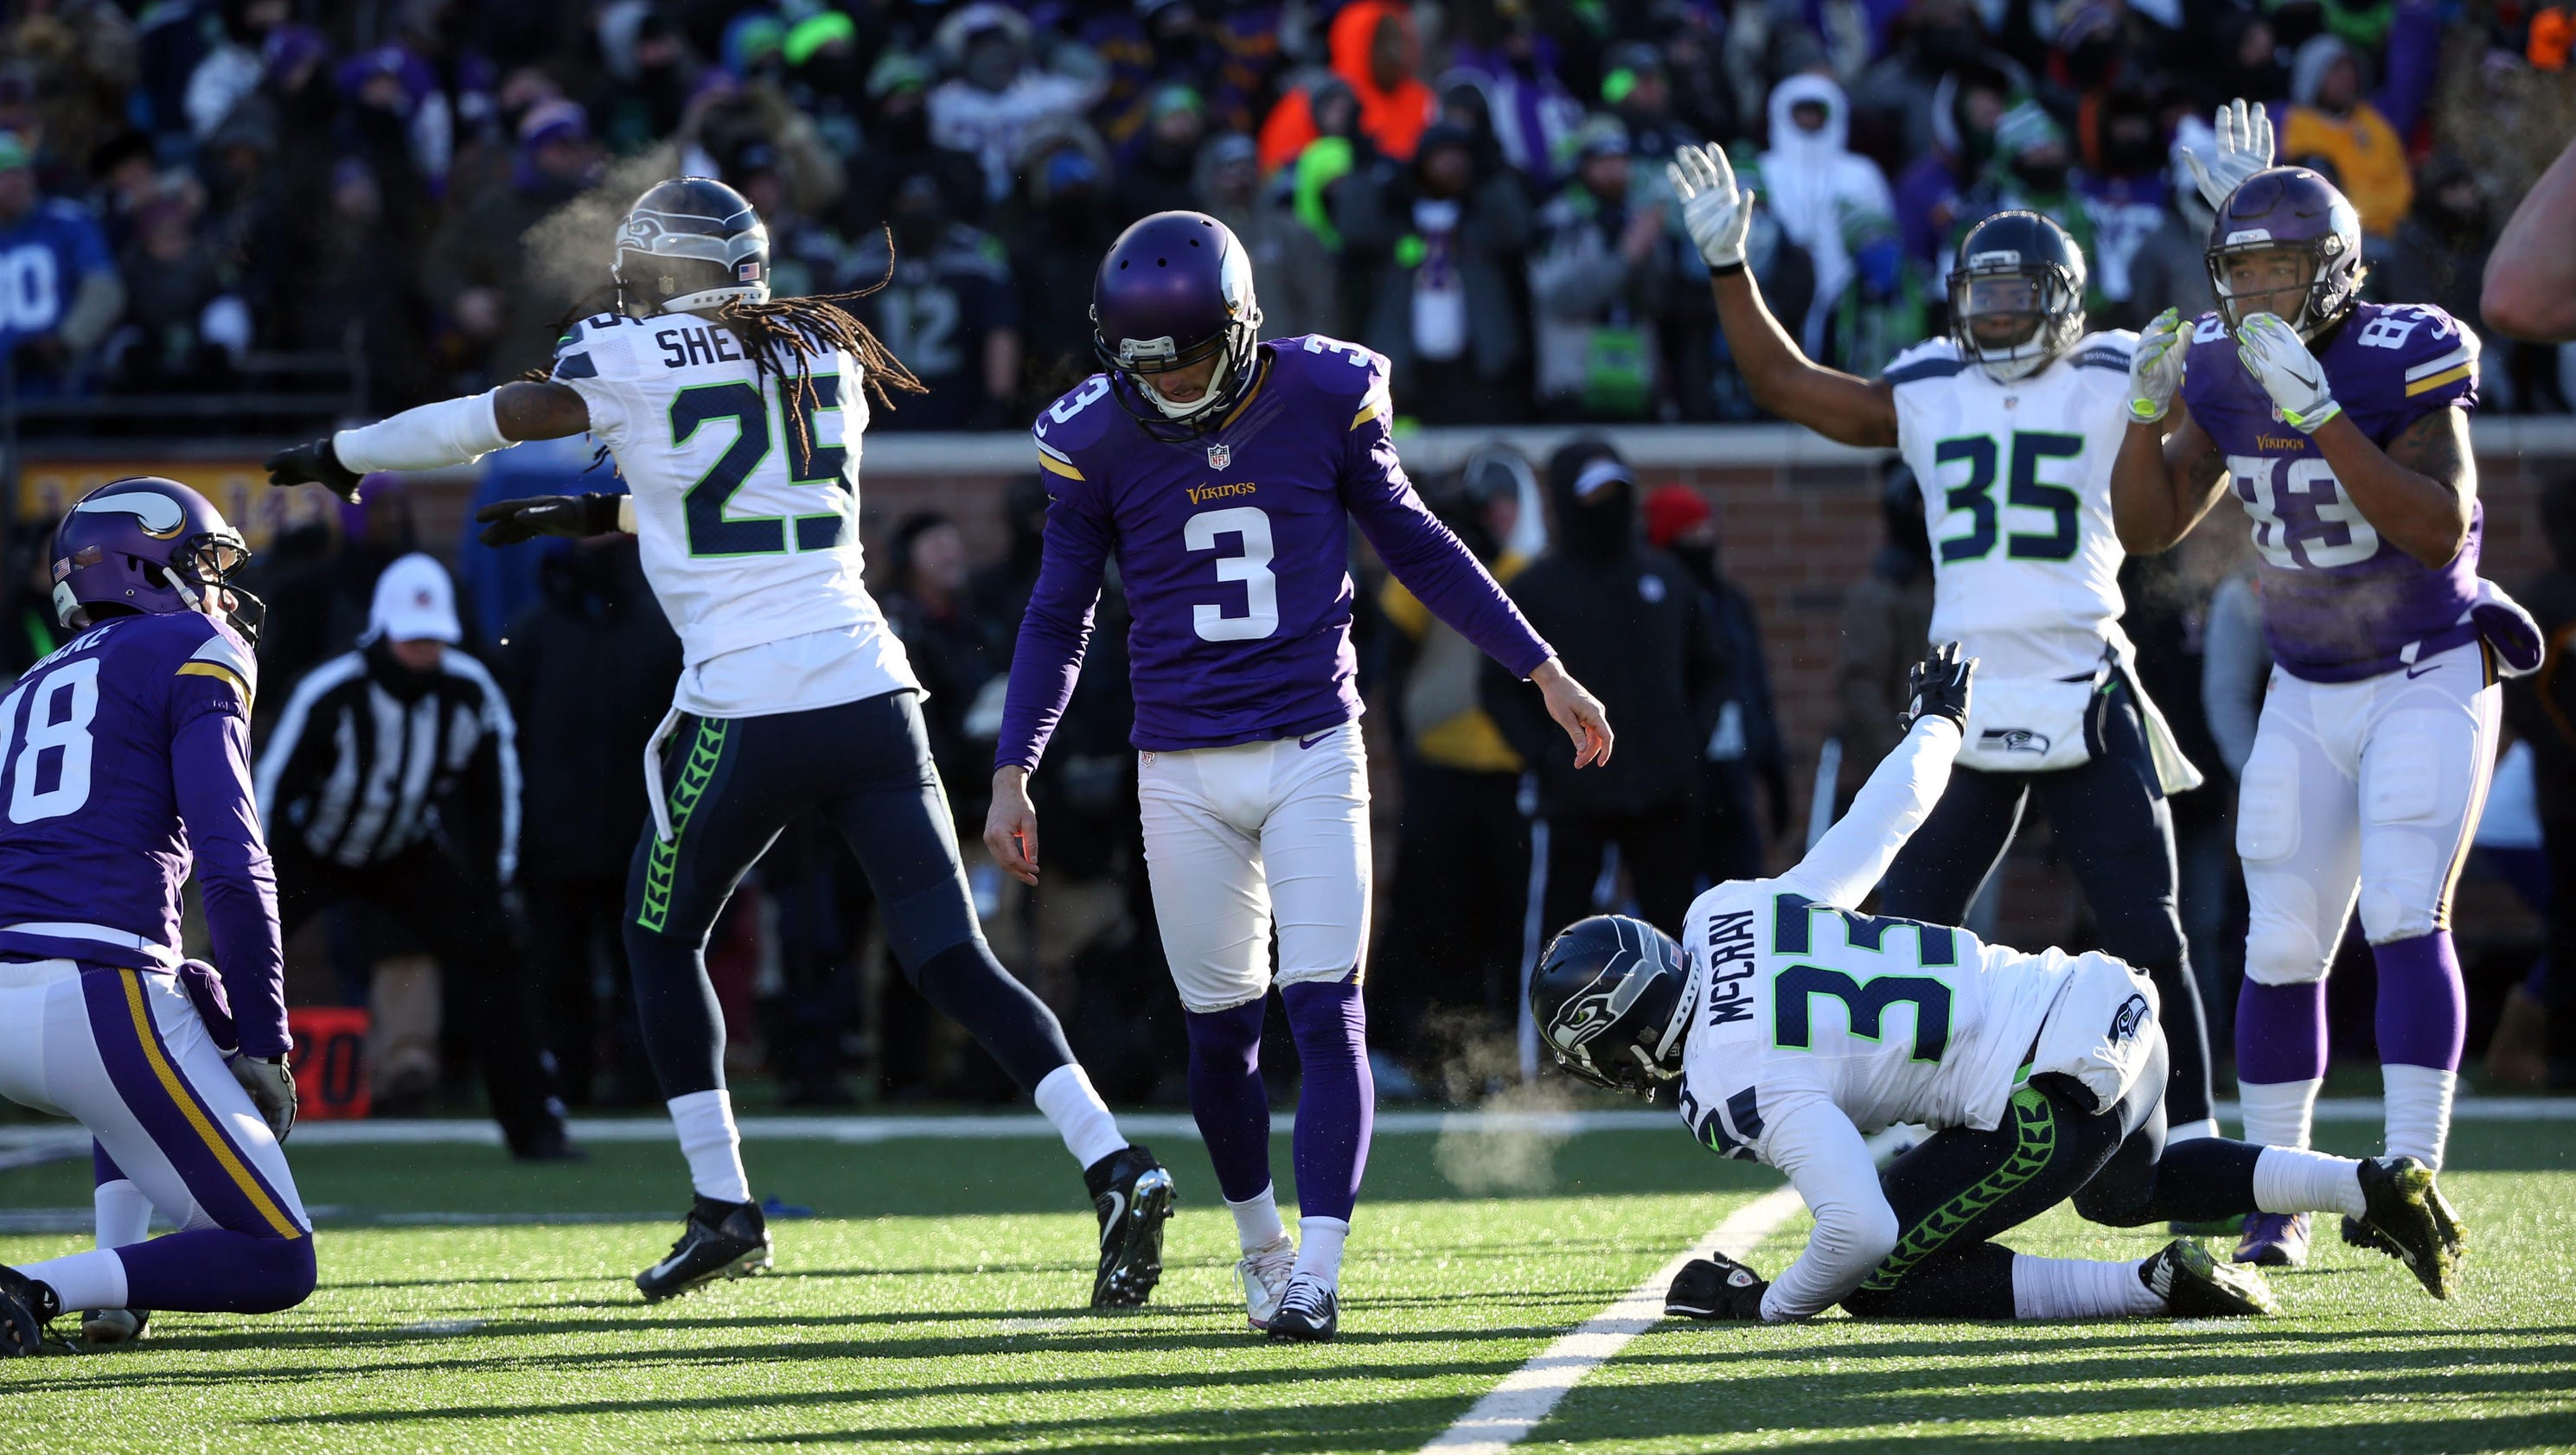 Seattle Blair Walsh >> Tearful Blair Walsh on missed kick: 'I didn't come through for' Vikings